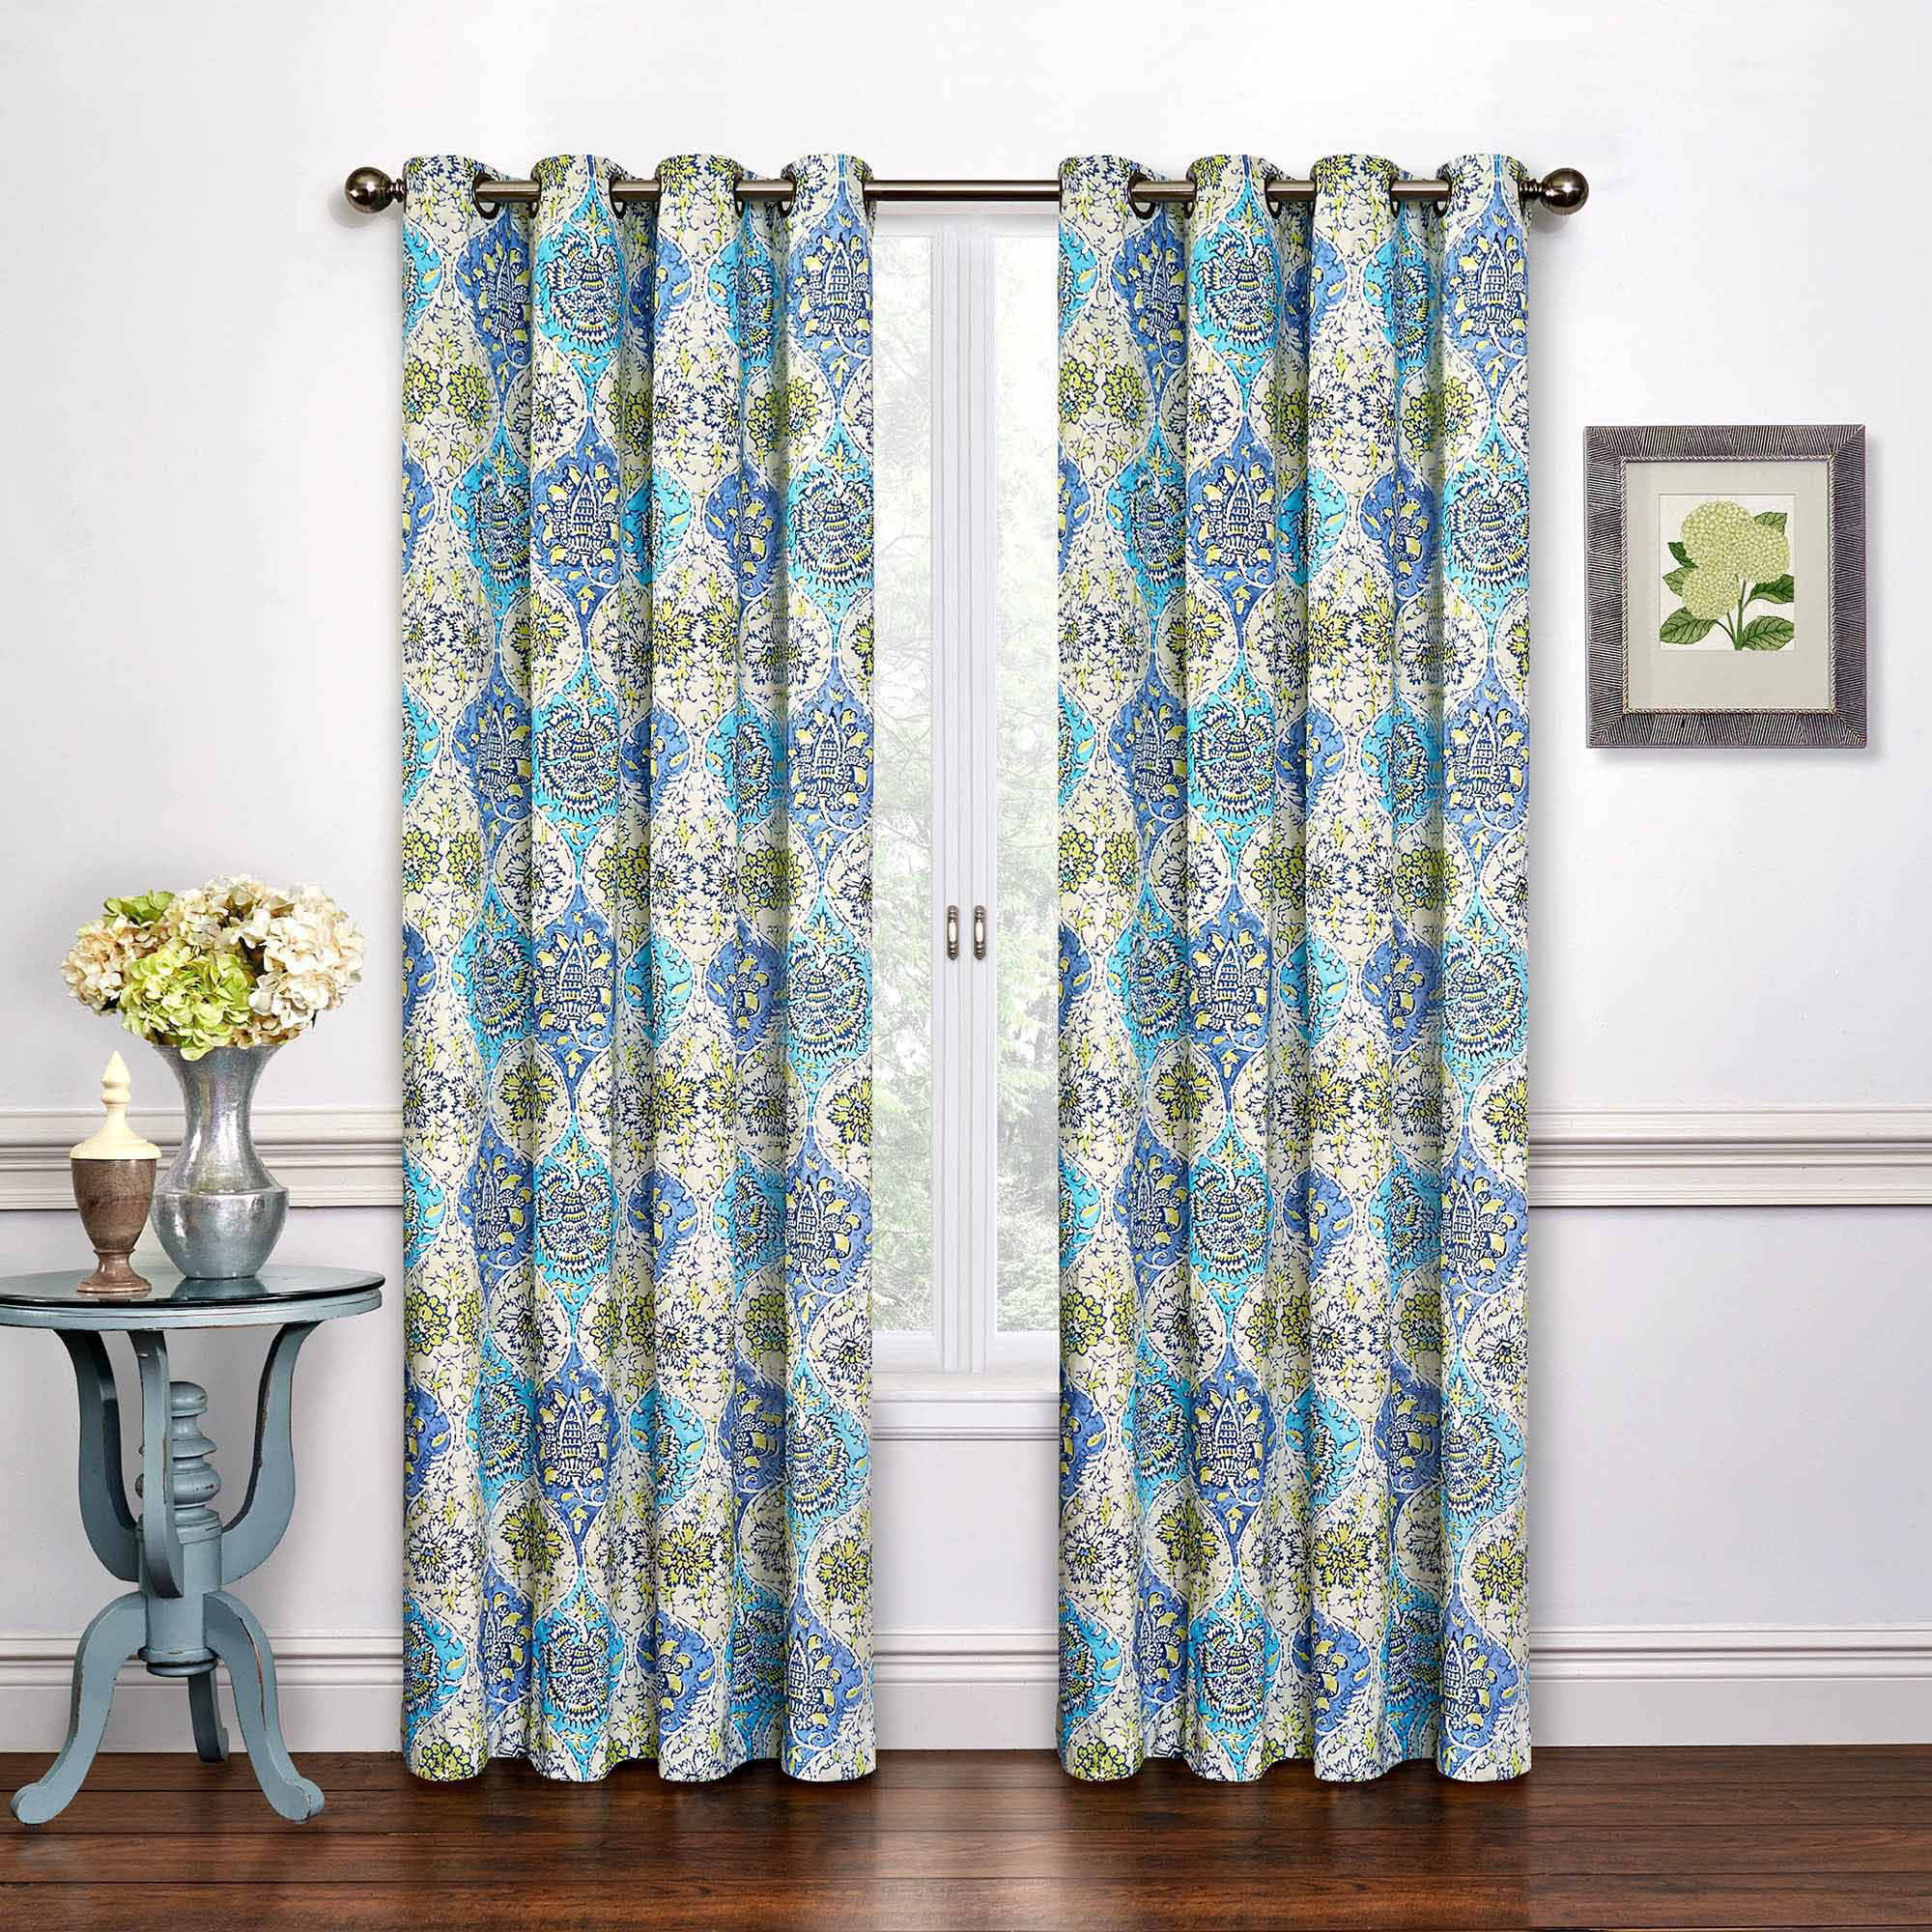 Teal curtain panels - Teal Curtain Panels 13